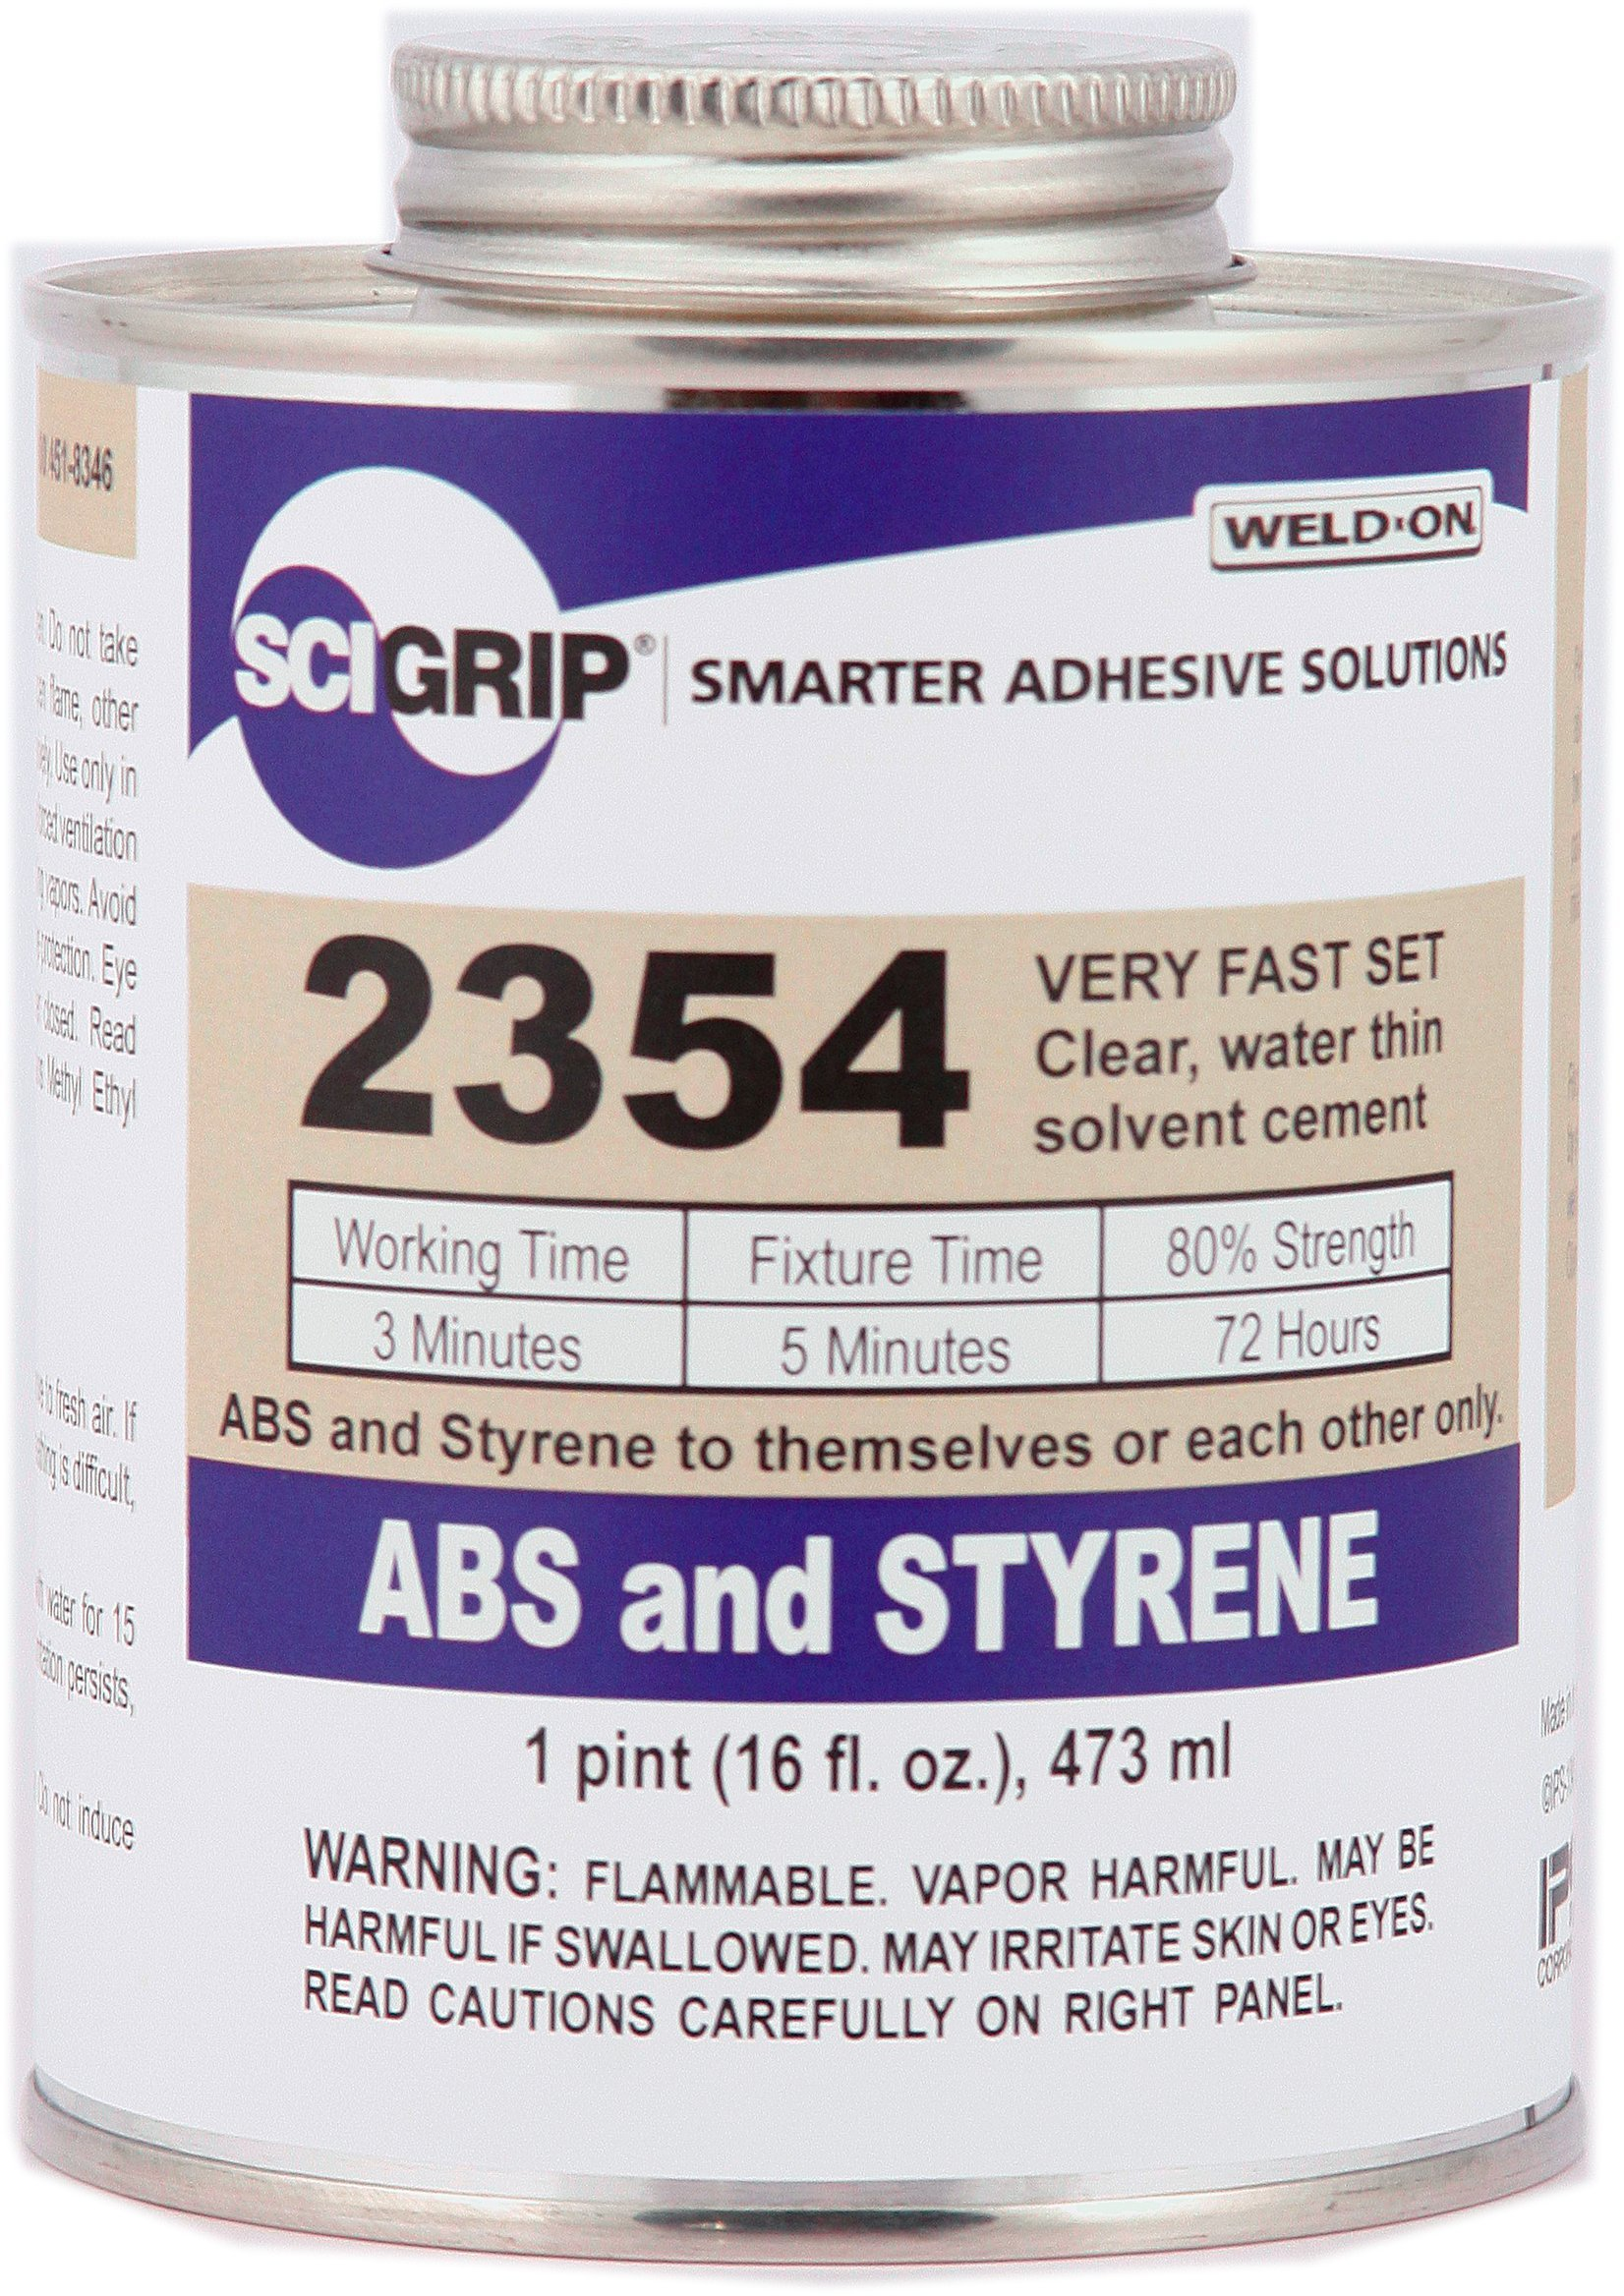 Weld-On 2354 Solvent Cement - Pint